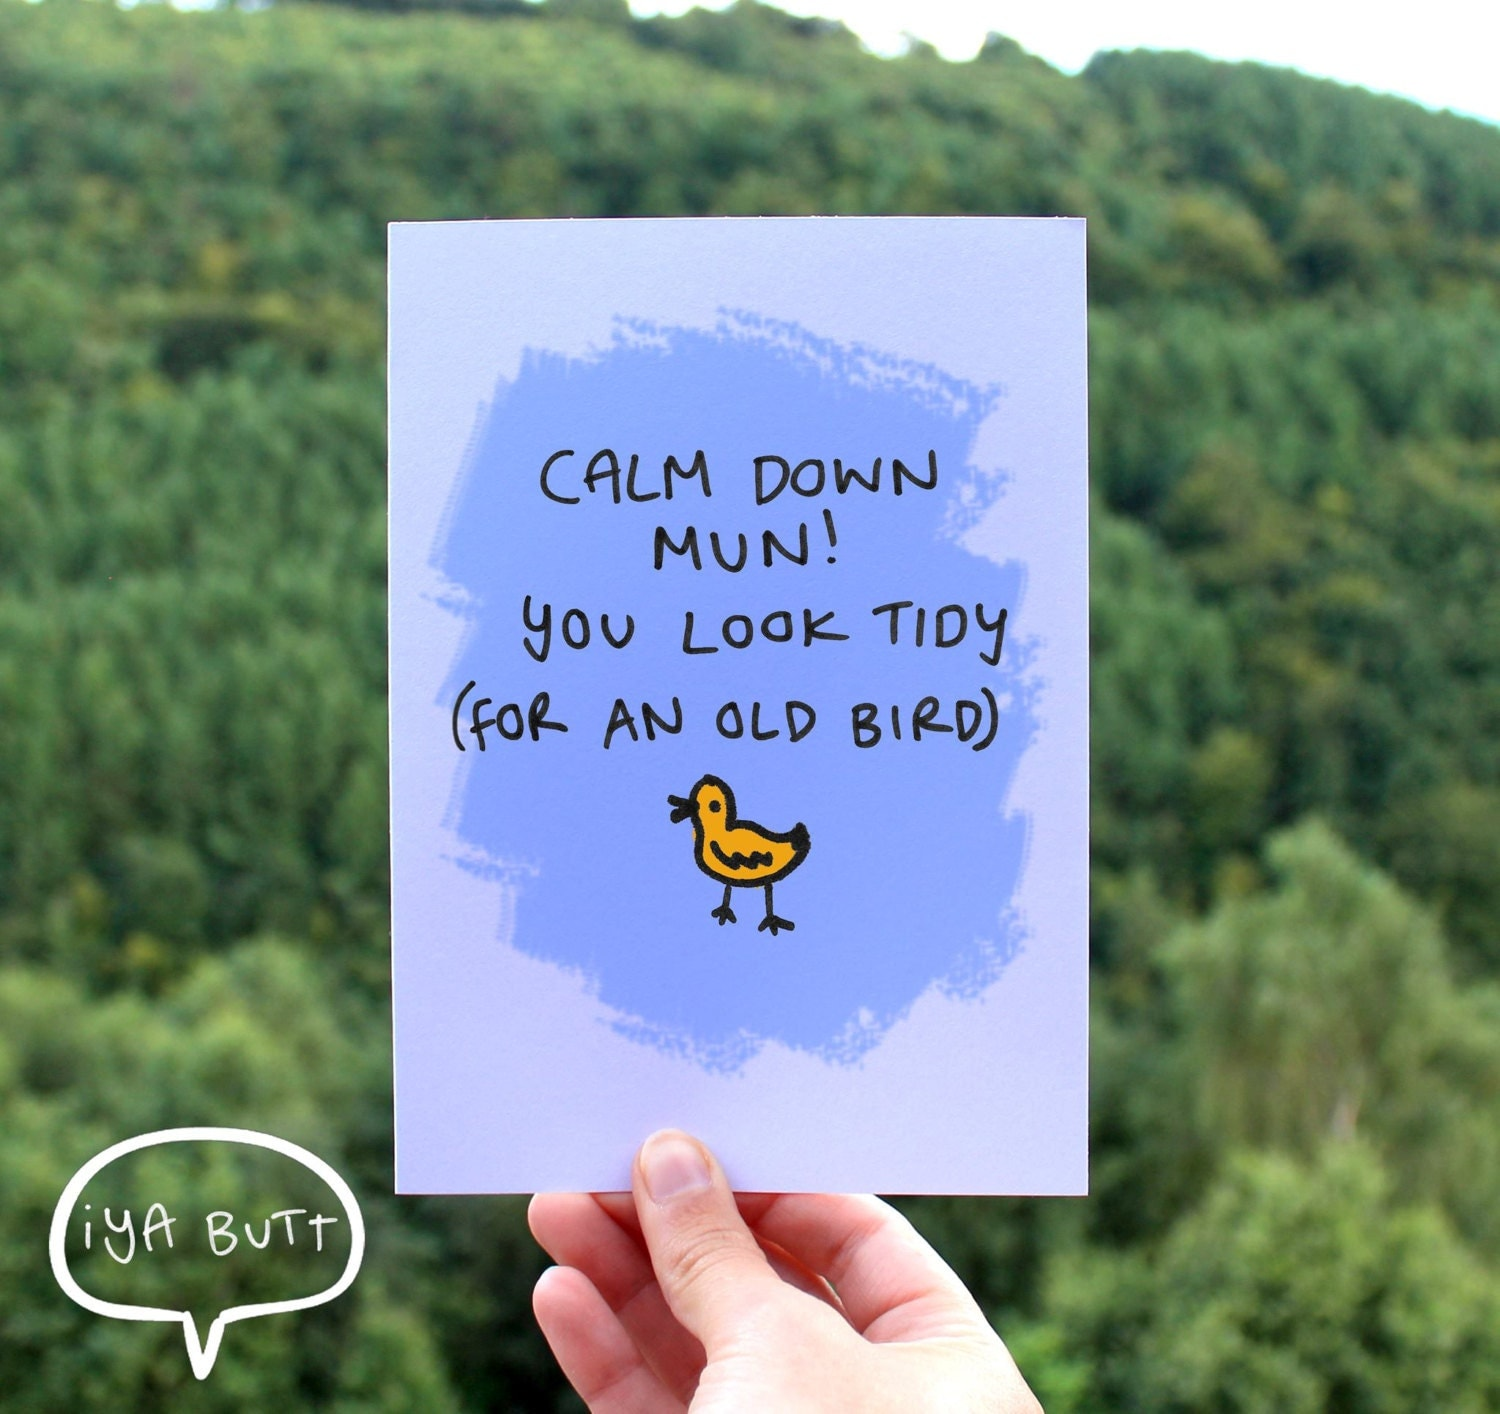 Calm down mun you look tidy for an old bird welsh greetings zoom m4hsunfo